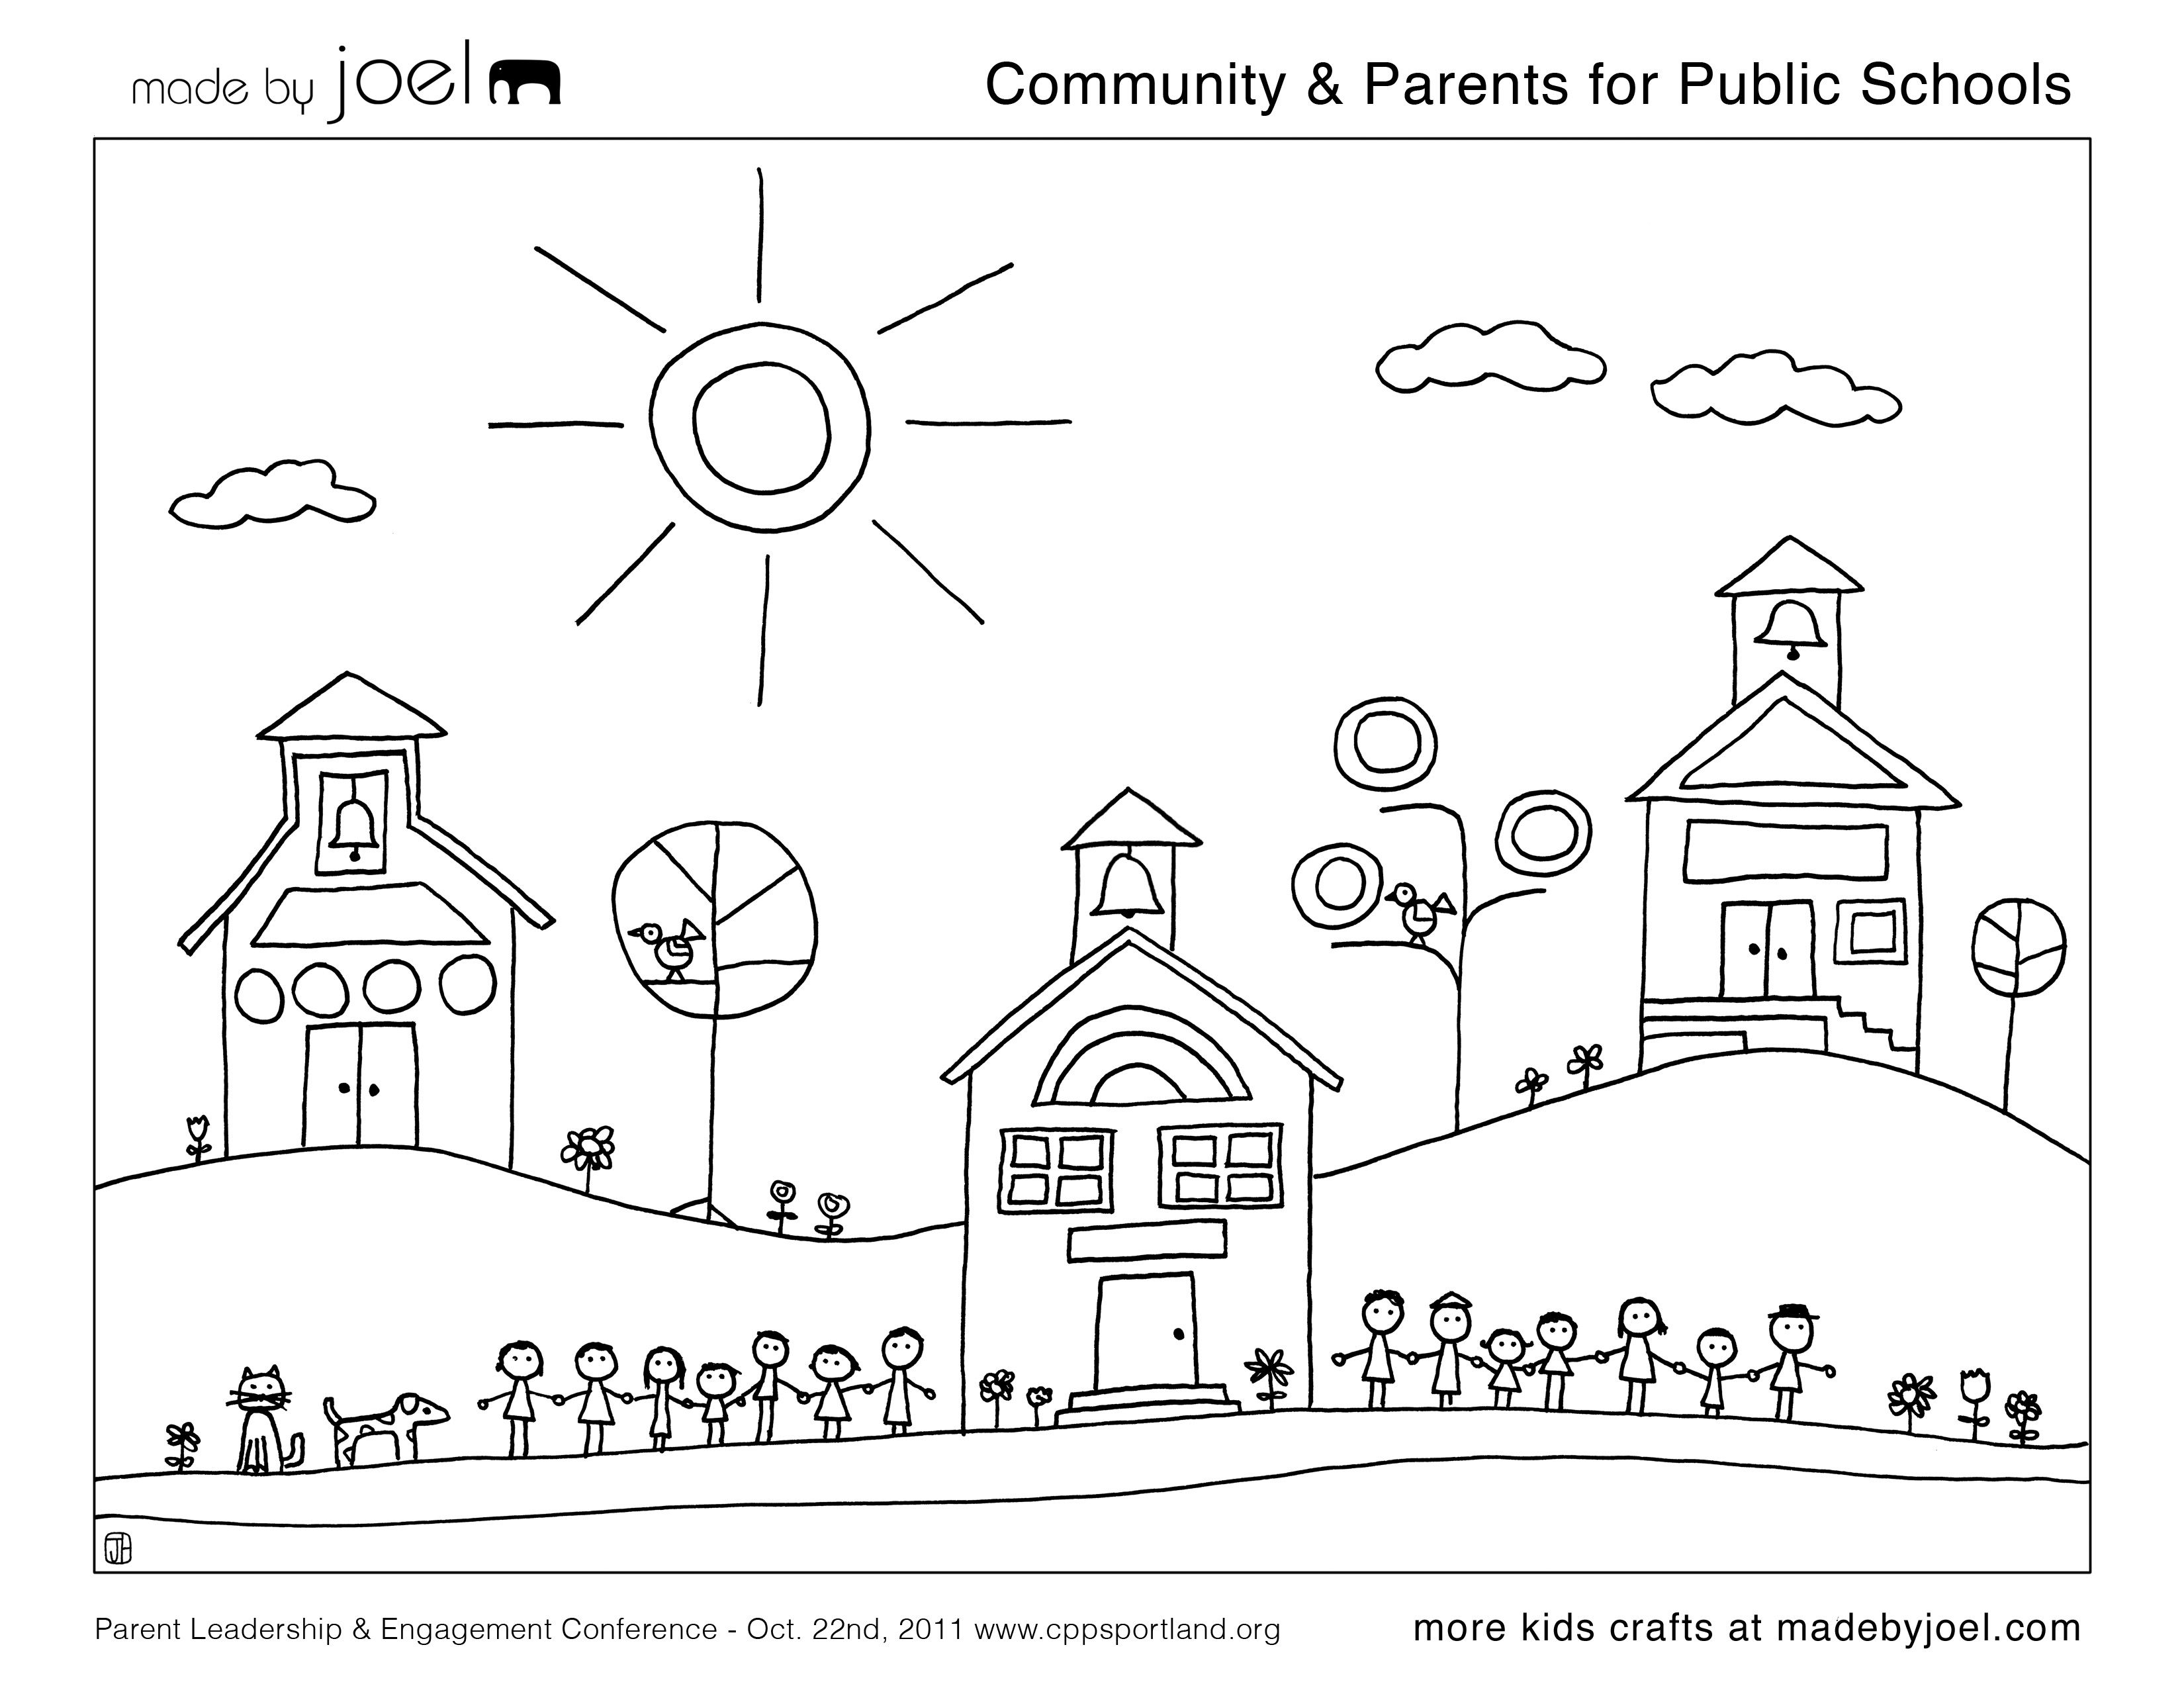 Made by Joel » Community & Parents for Public Schools Coloring Sheet ...